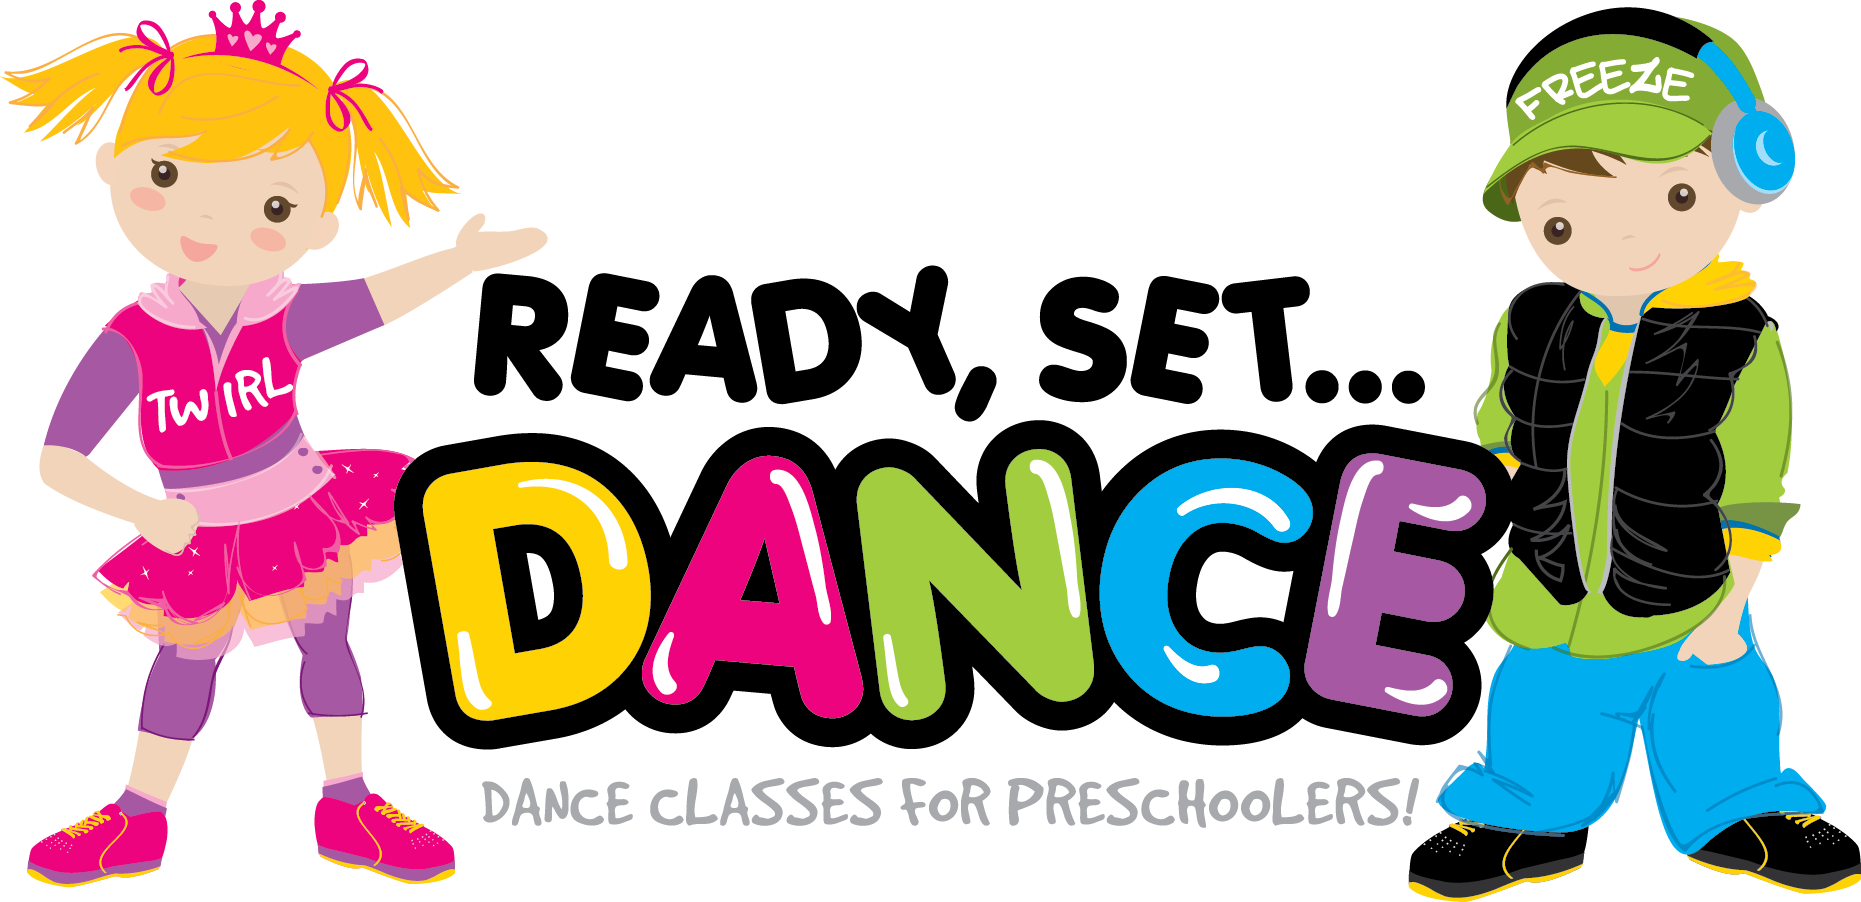 Dancing clipart dance class. Legs performing arts ballet